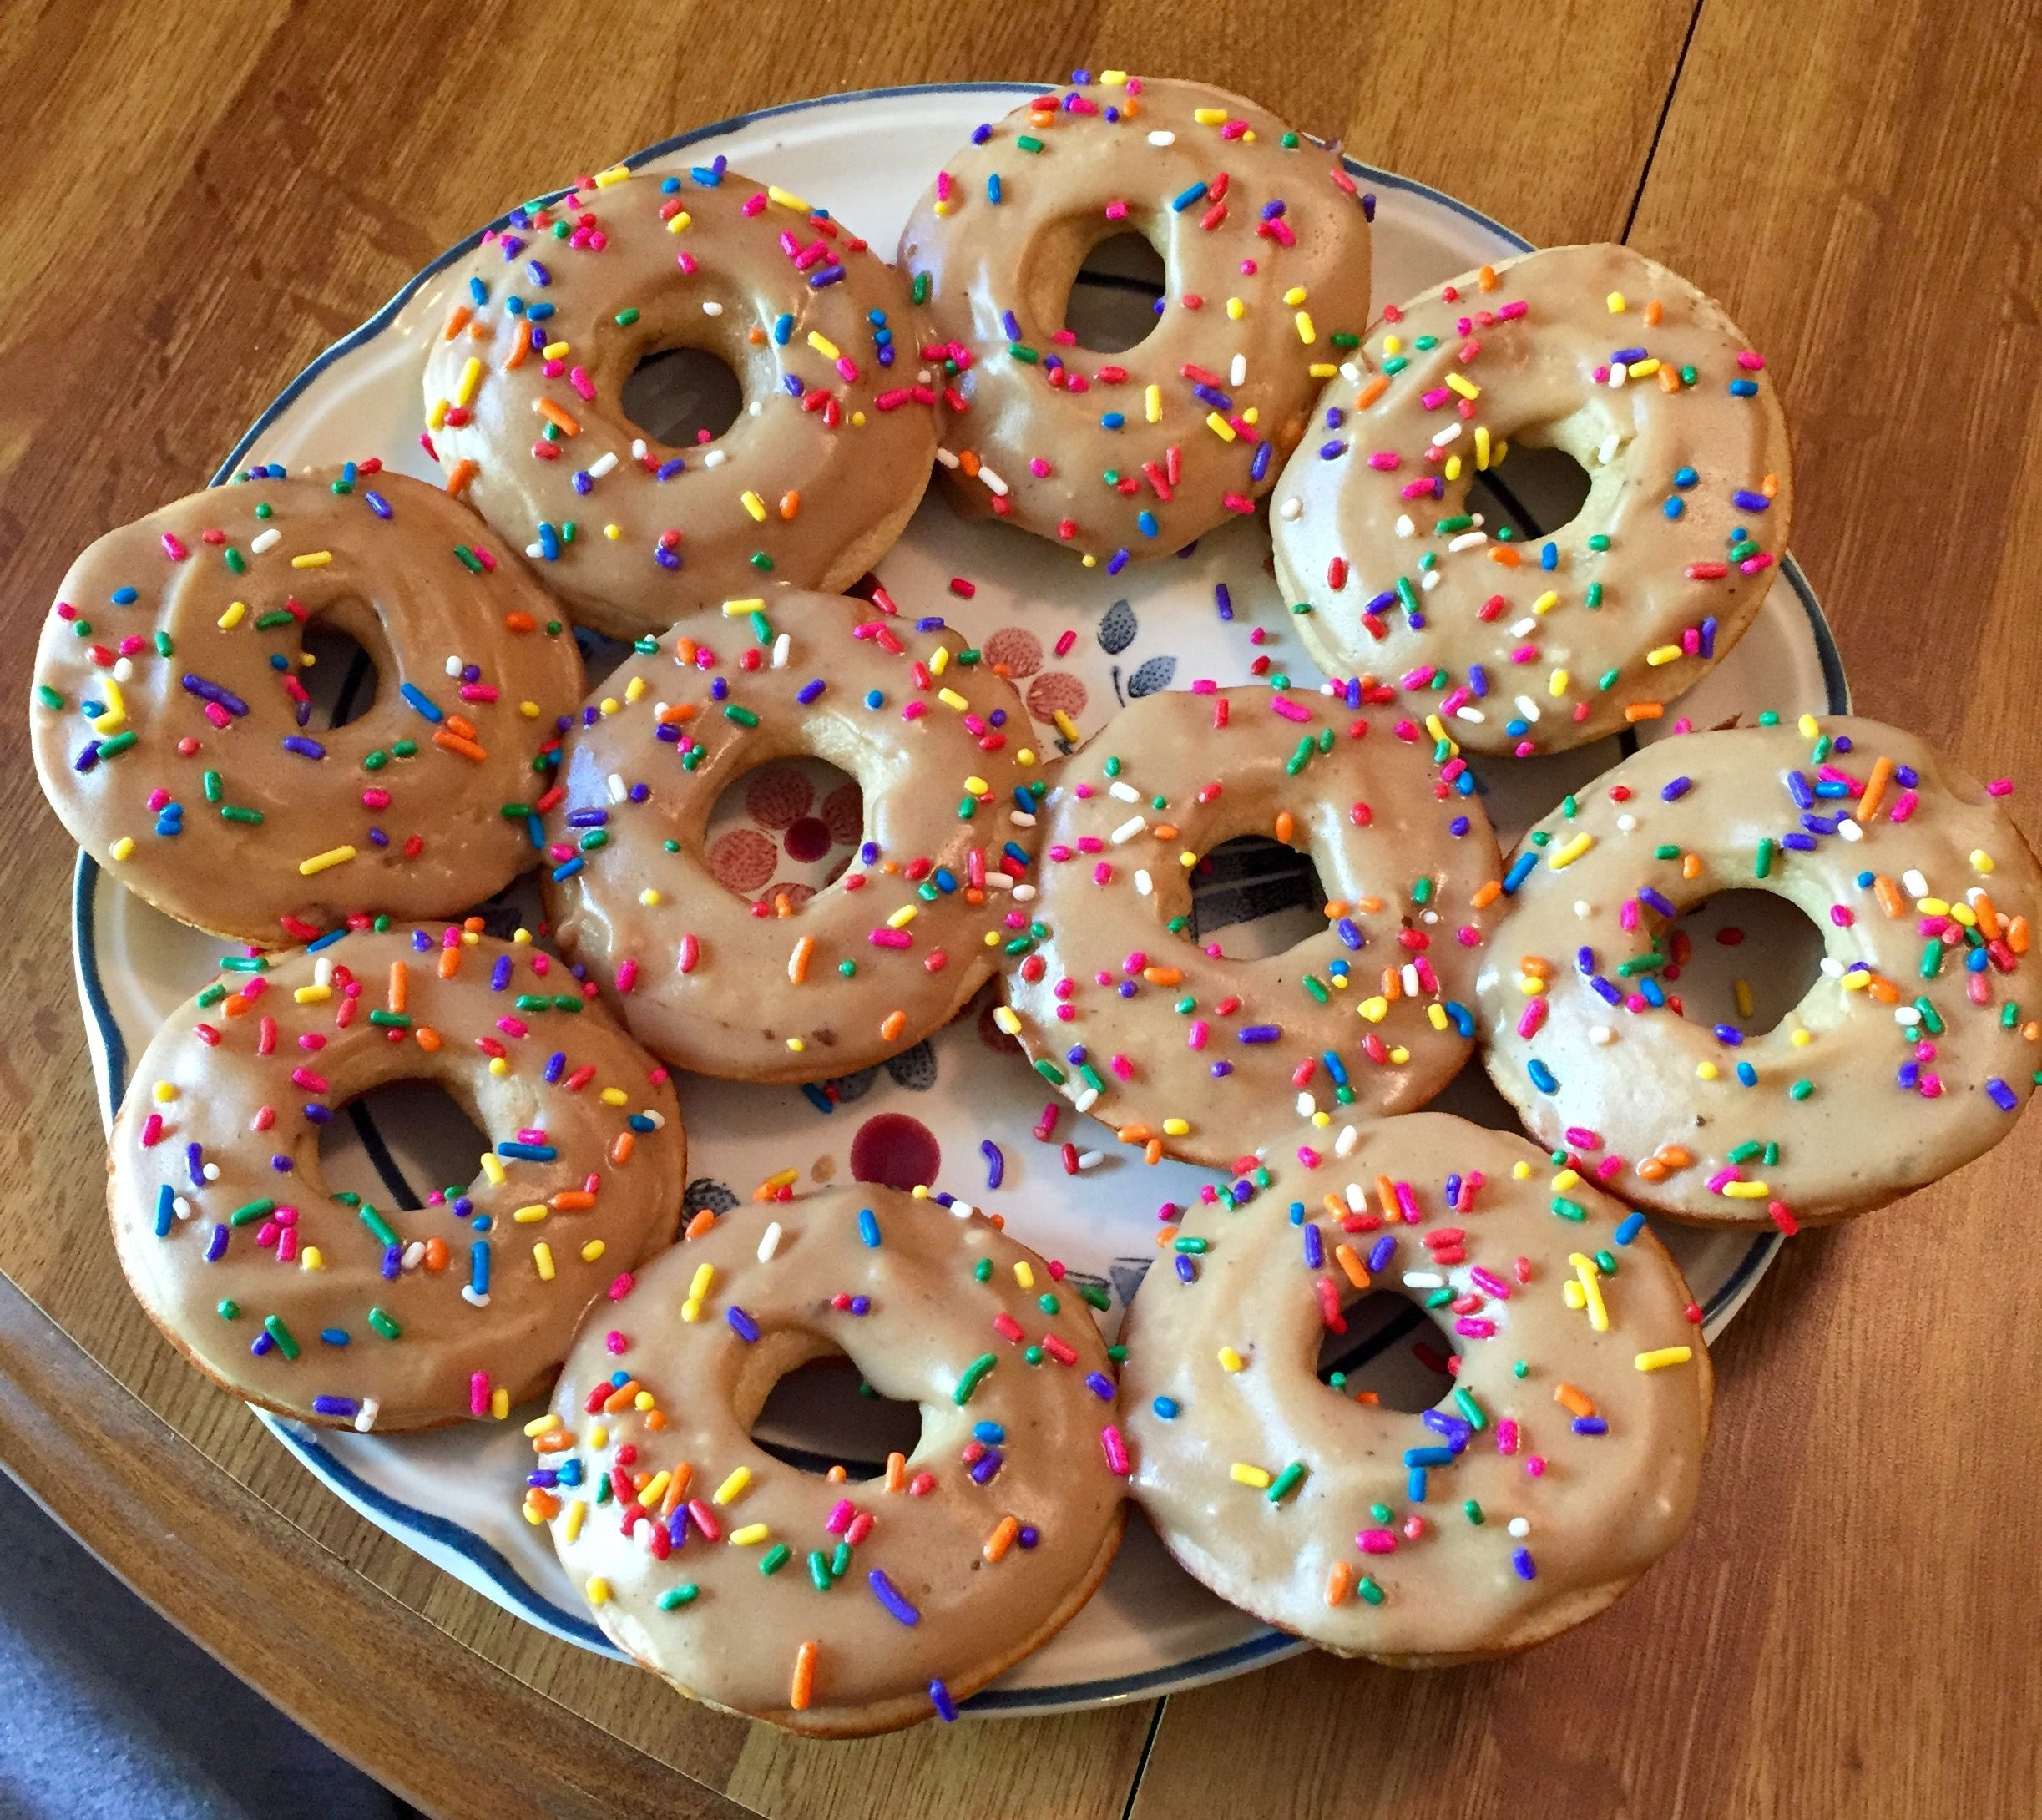 Kodiak Cake Protein Donuts image                                                                                                                                                                                 More #proteindonuts